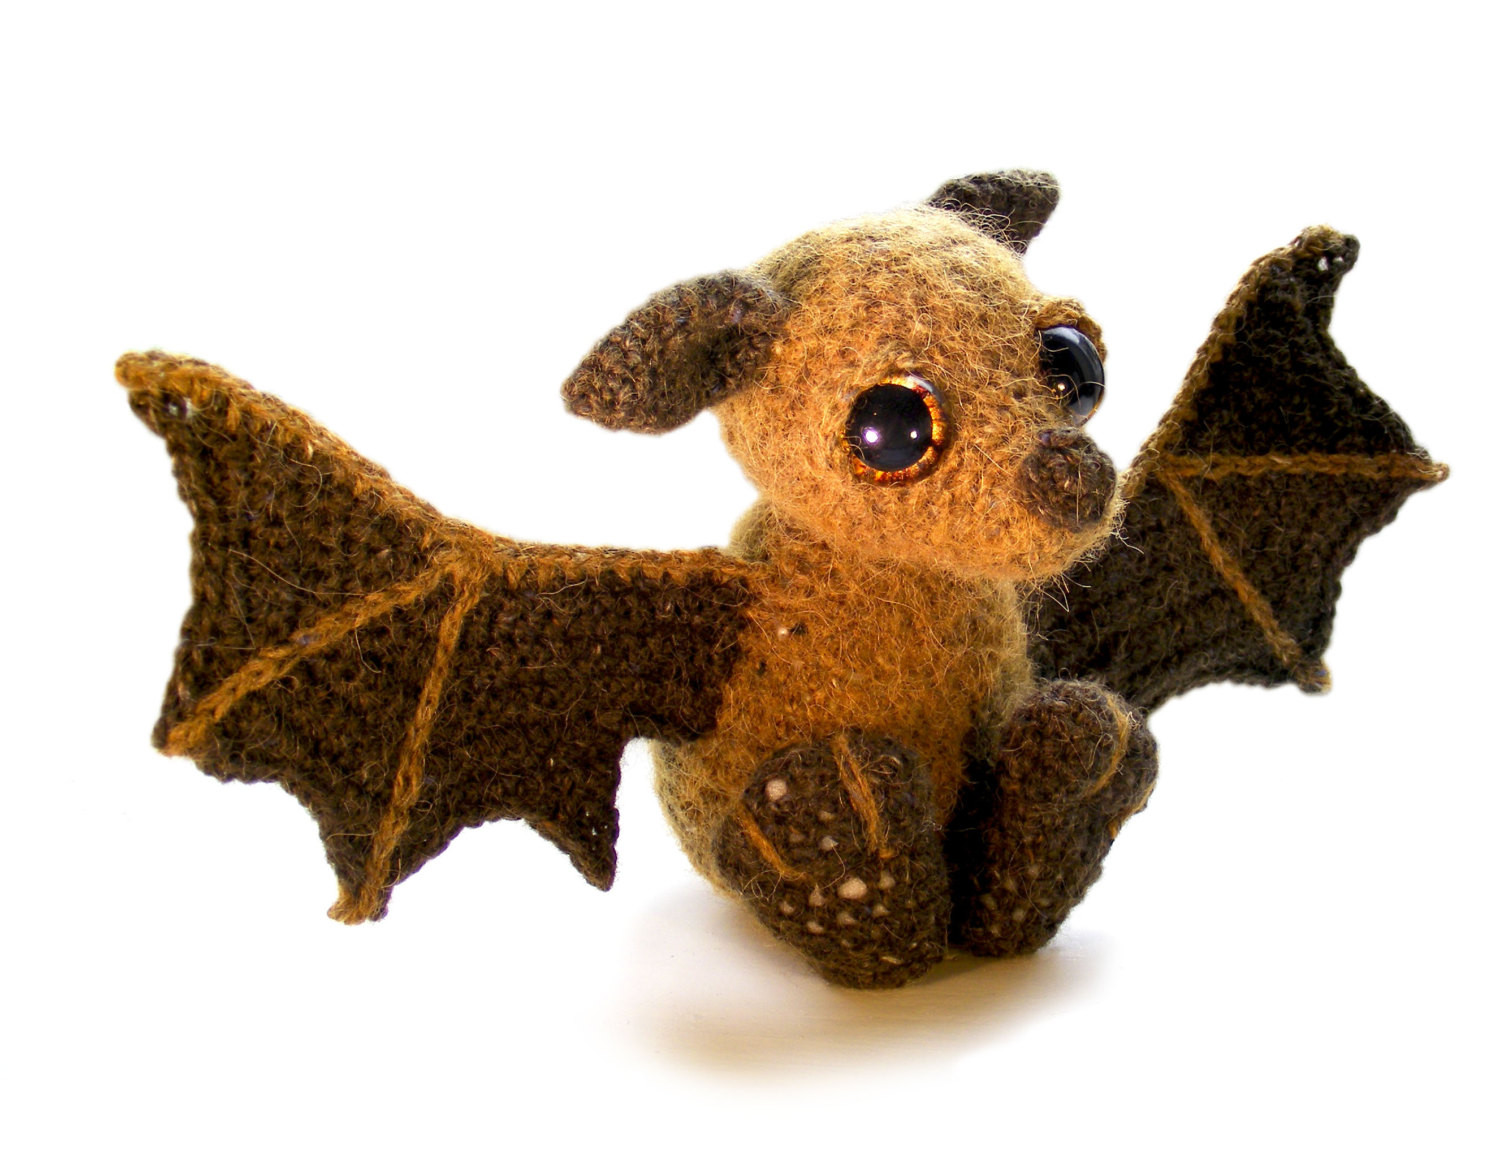 Free Crochet Bat Pattern Unique Bat Amigurumi Crochet Pattern Pdf Instant Download Otis Of Gorgeous 42 Pics Free Crochet Bat Pattern